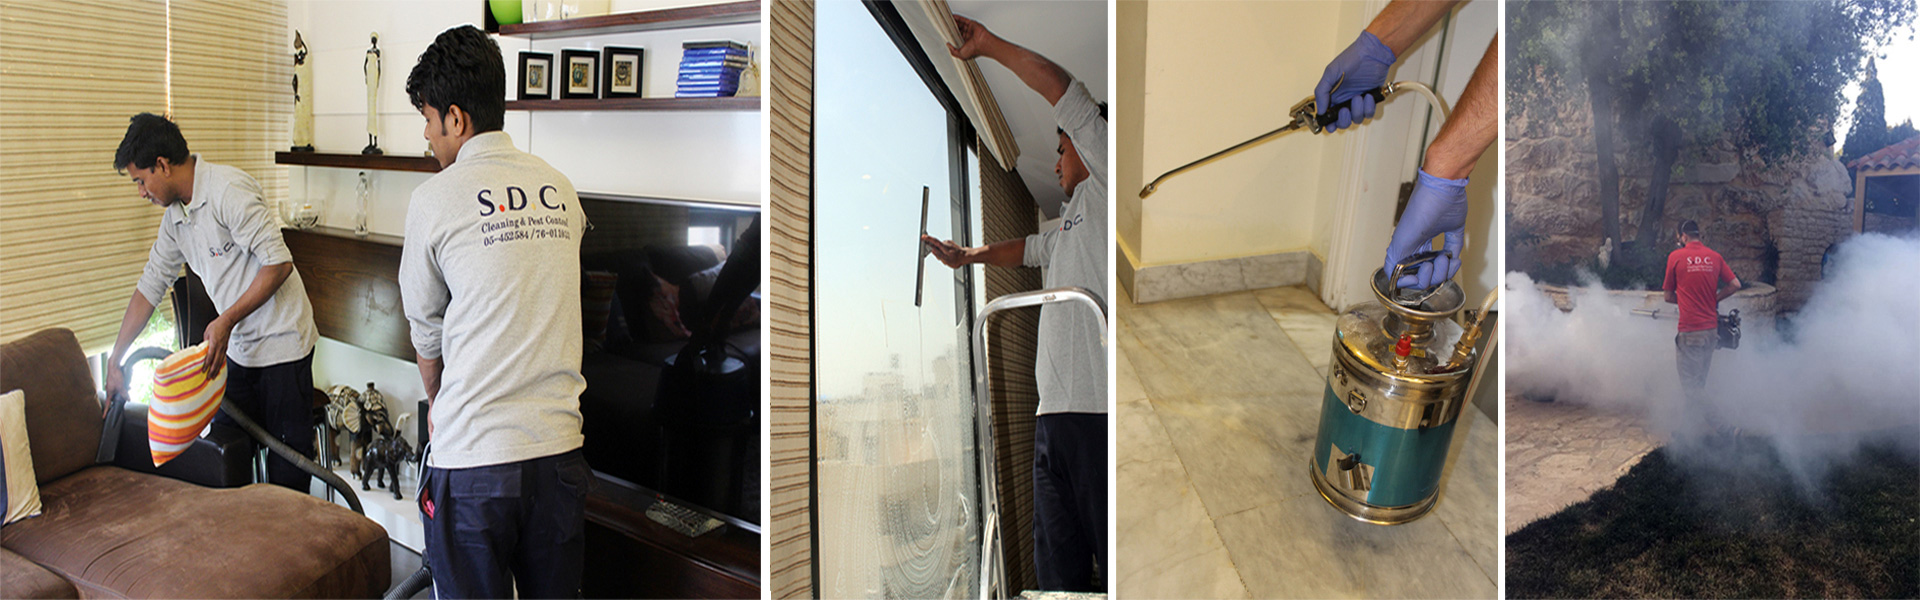 Cleaning Services in Lebanon & Pest Control Lebanon by SDC Services